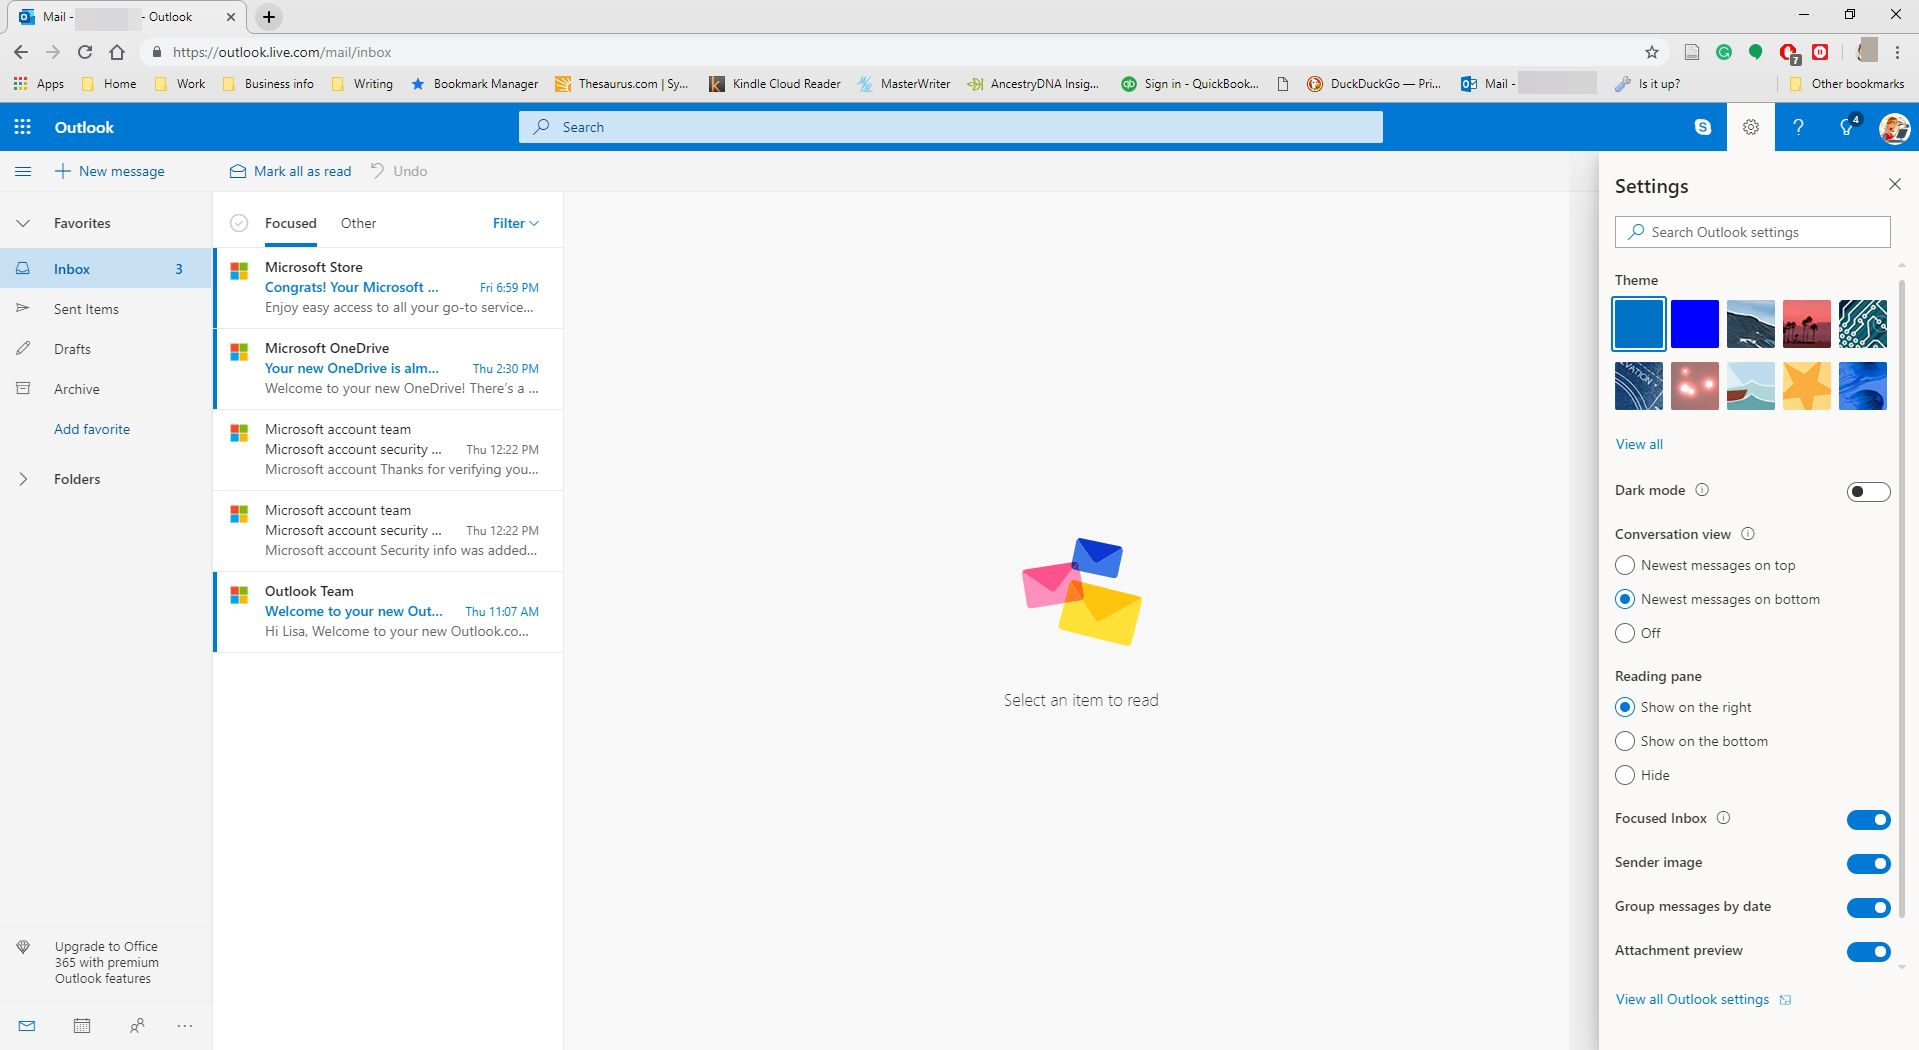 Selecting to view all Outlook settings in Outlook.com.